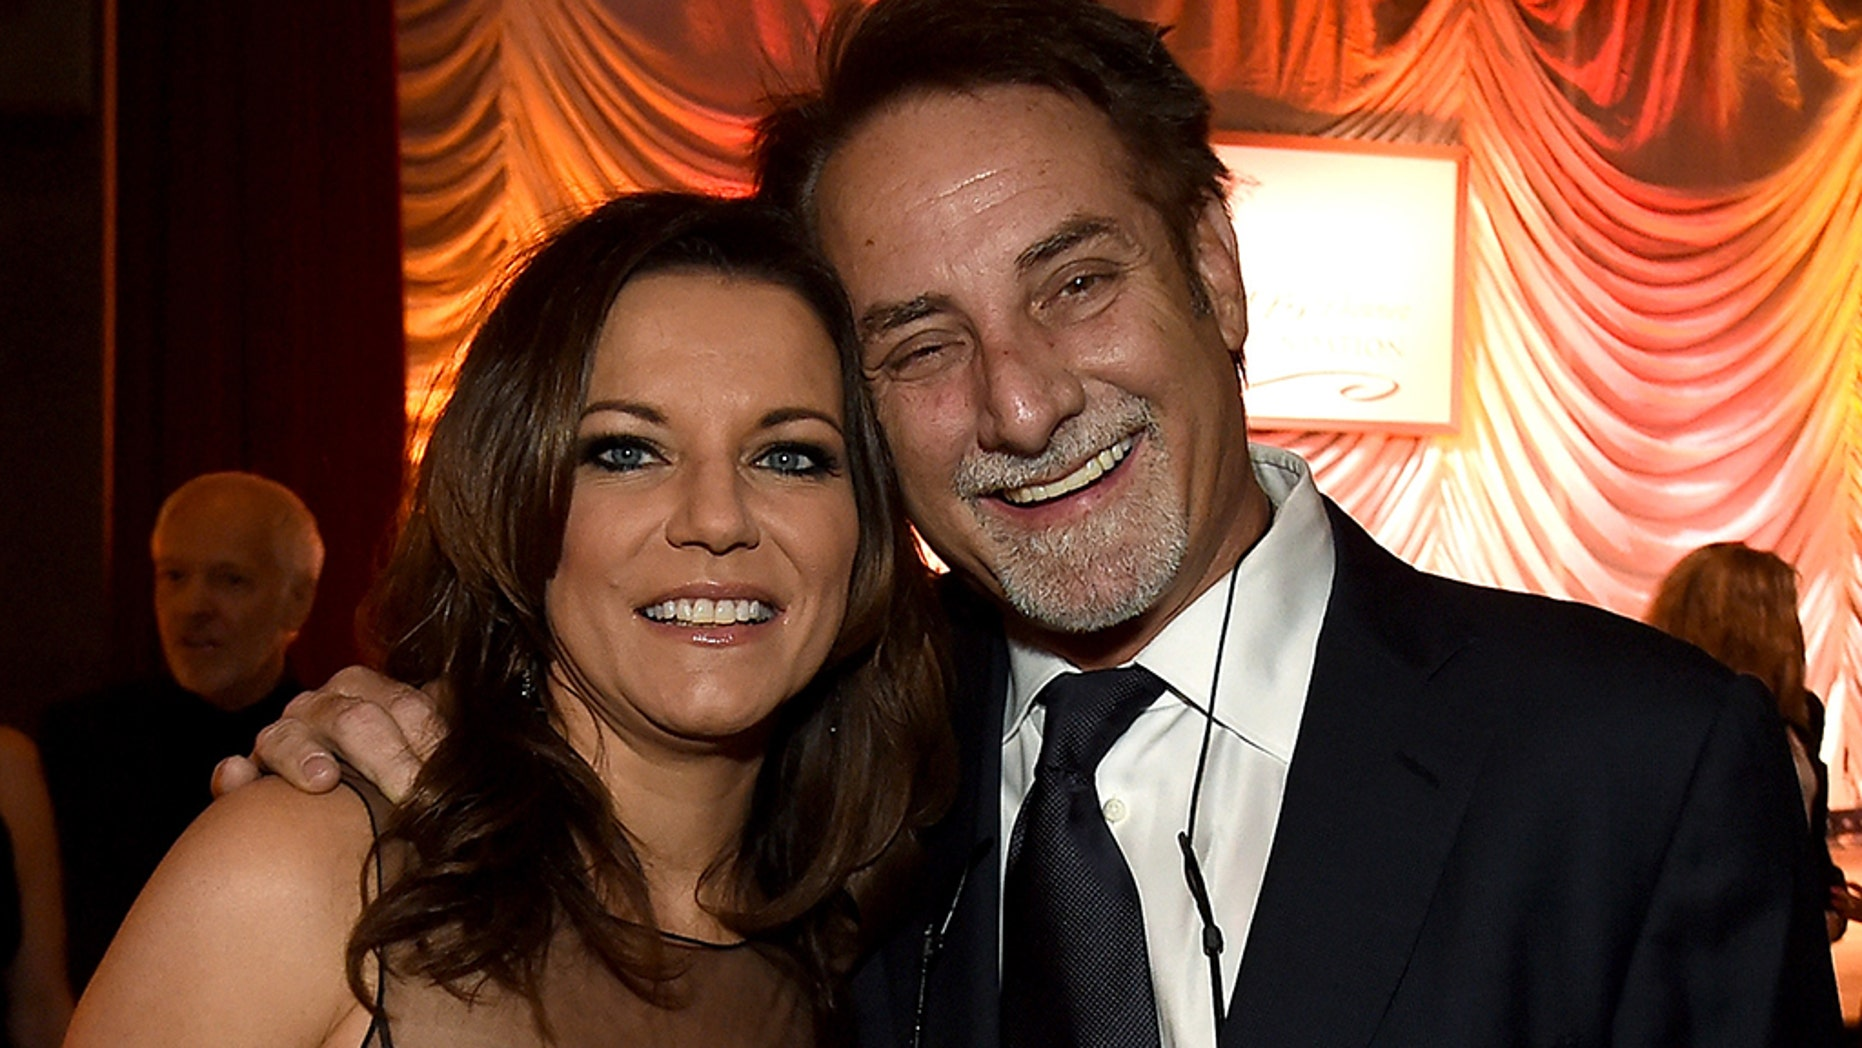 Martina McBride, left, and her husband John McBride, right, are being sued for $1 million by a former employee.